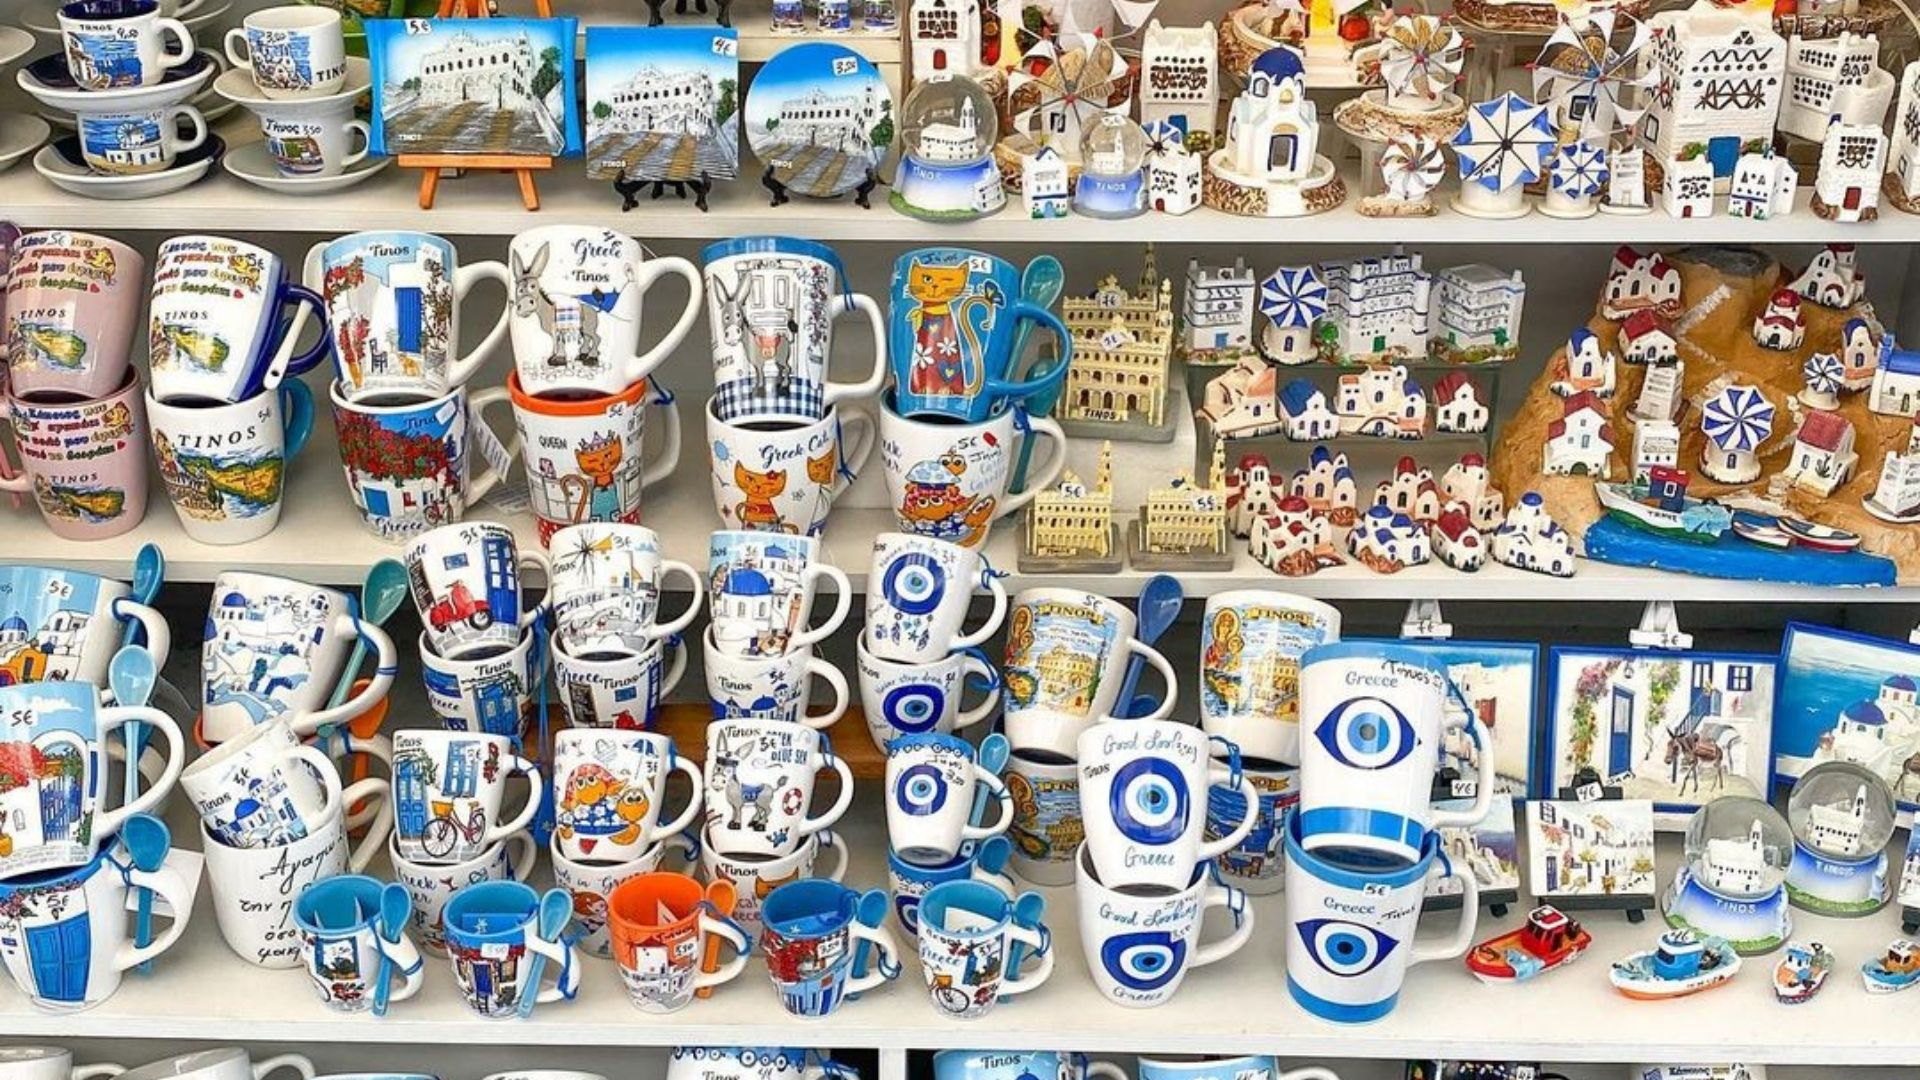 Souvenir shop in Tinos